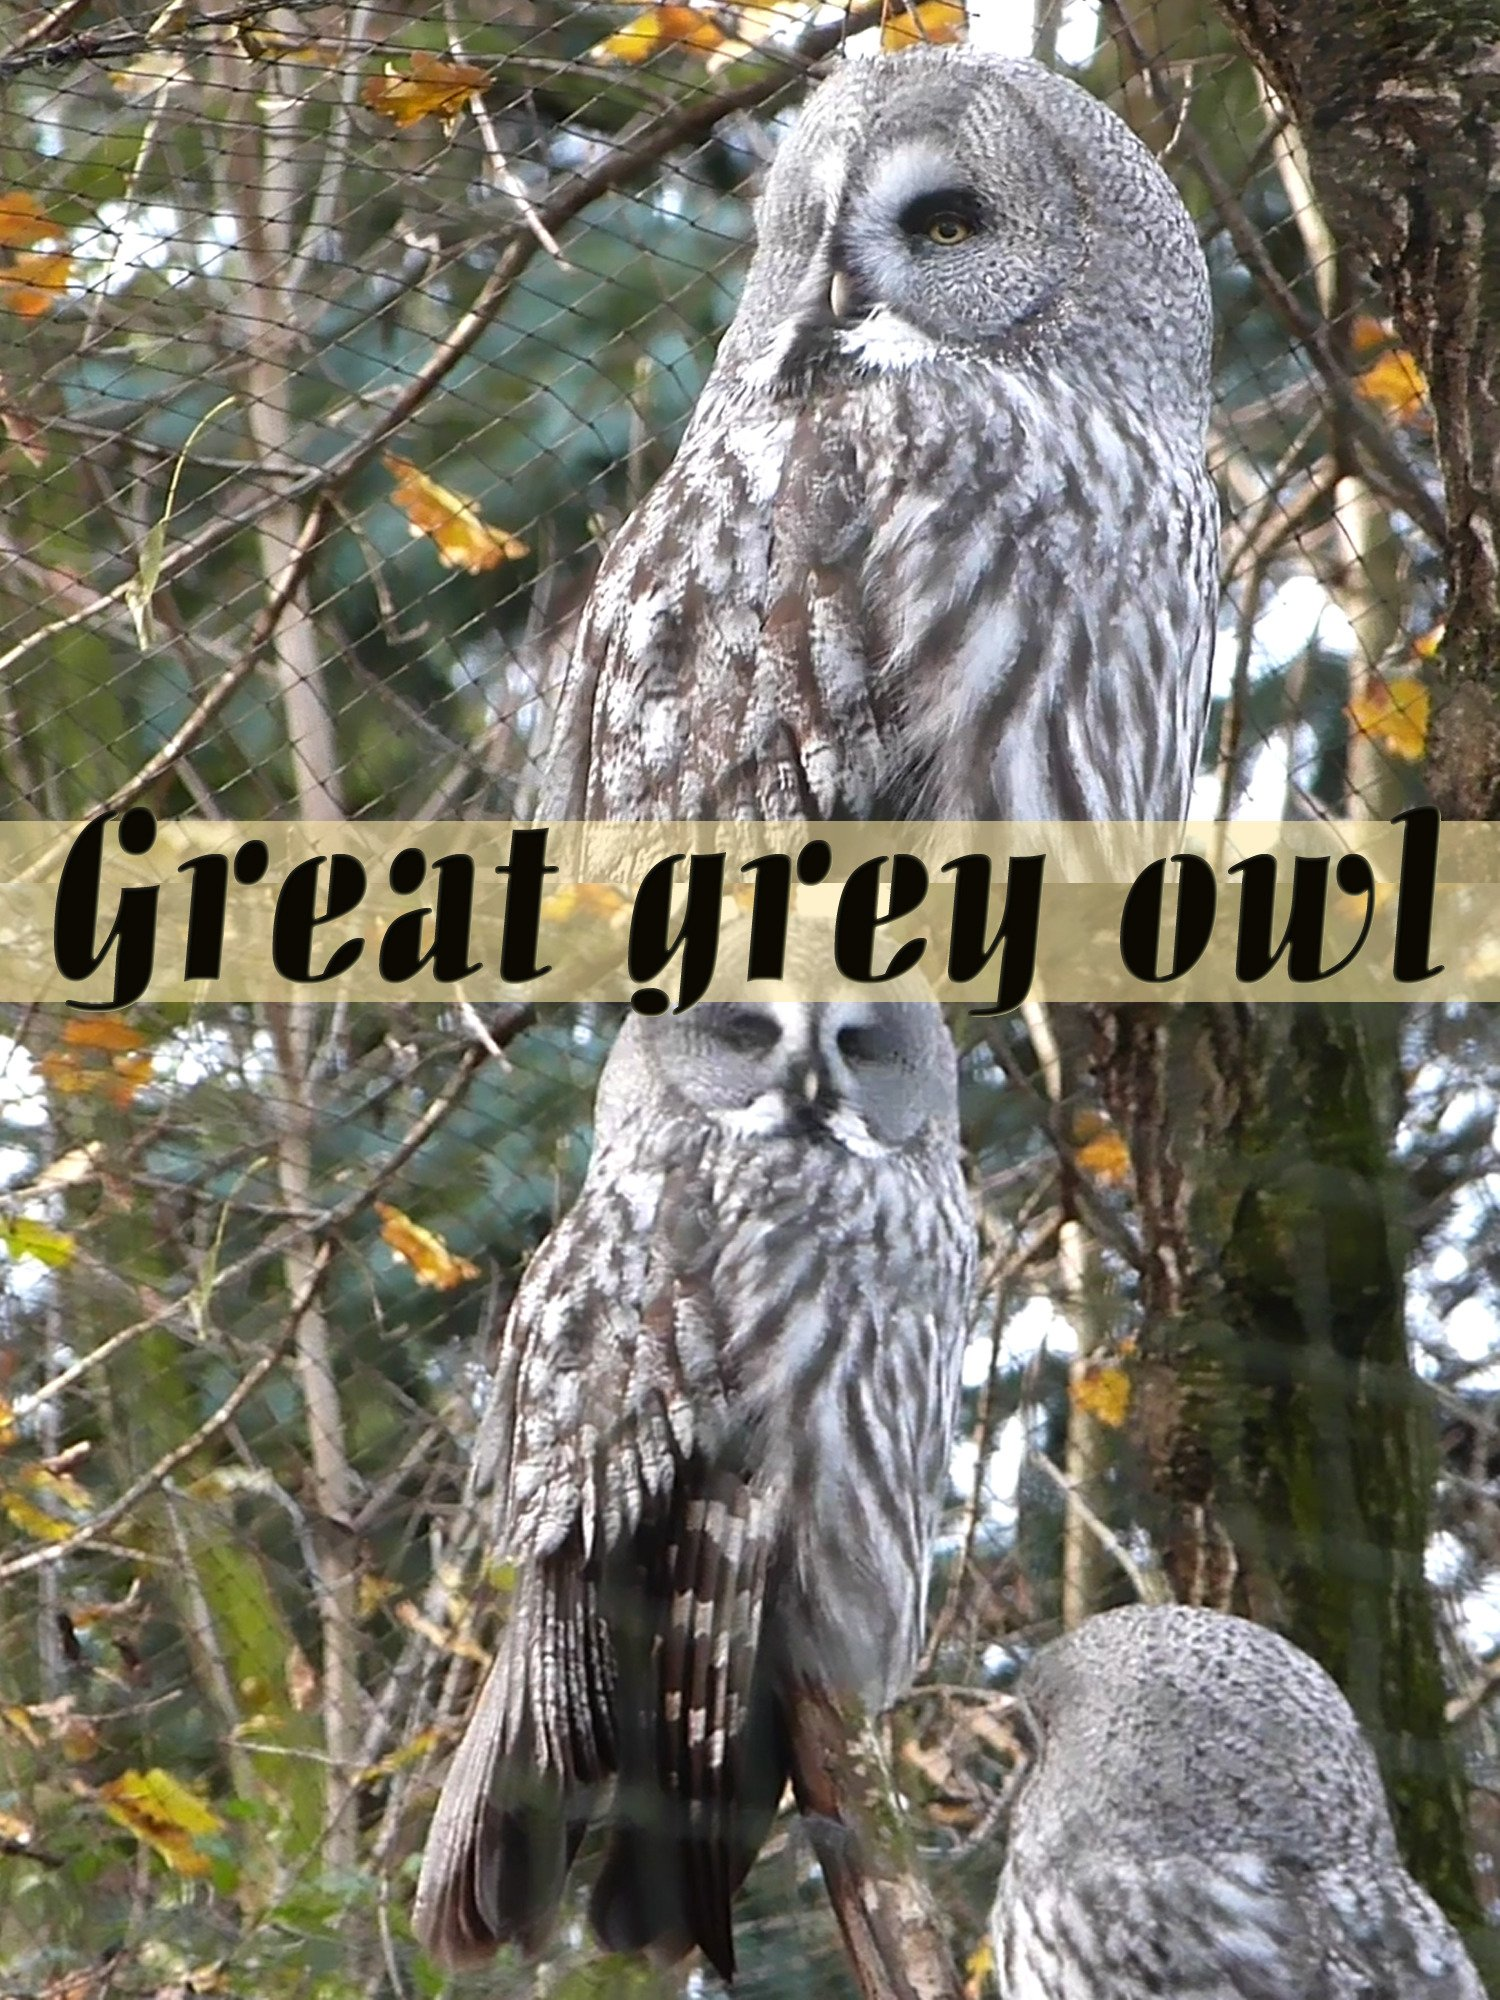 Clip: Great grey owl